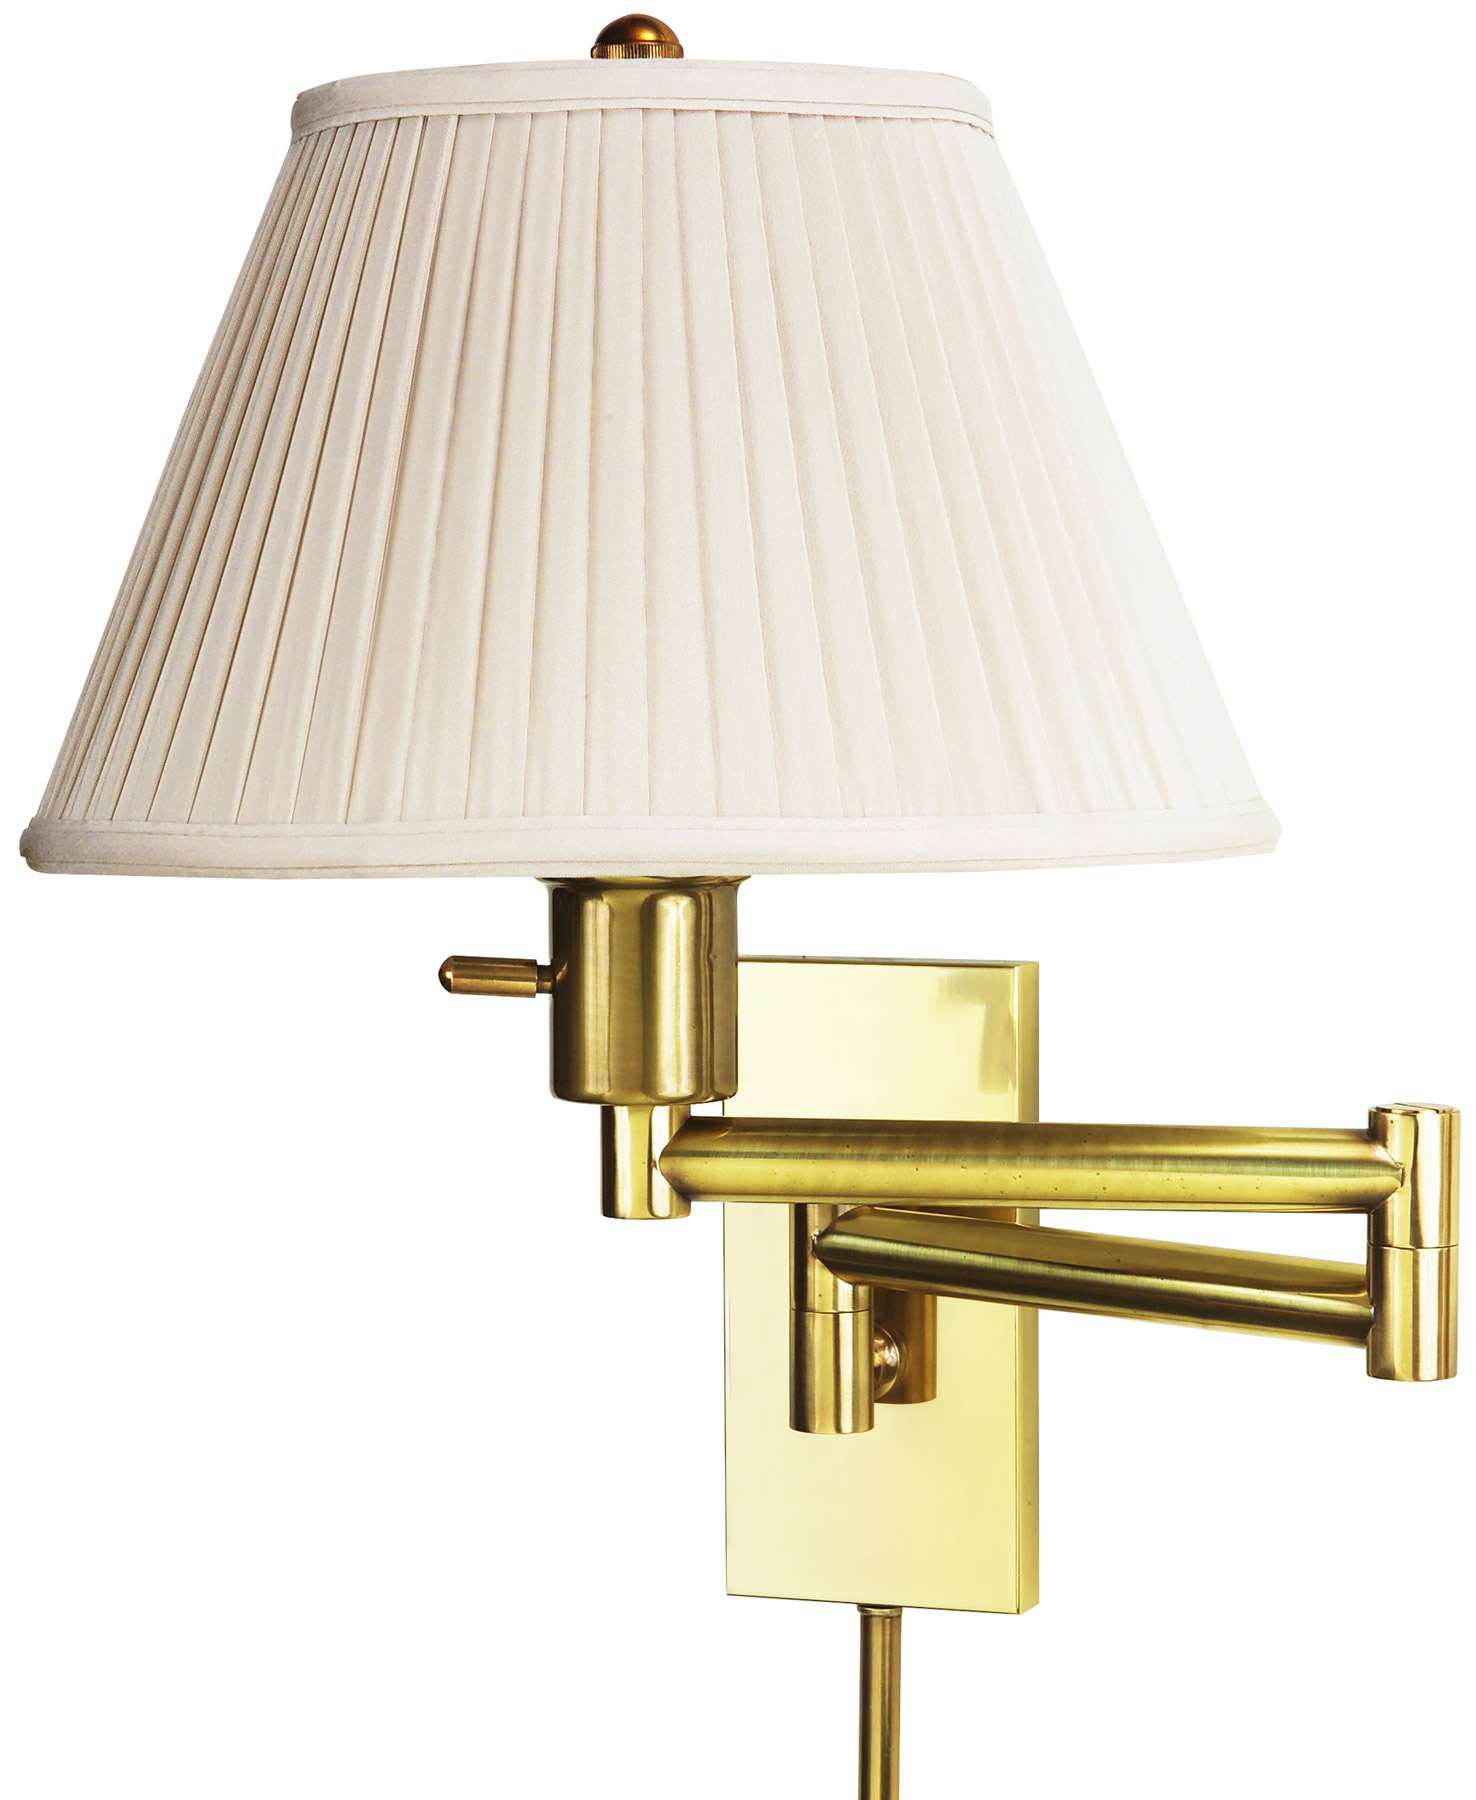 Frederick Cooper 65014 Monroe Swing Arm Wall Lamp